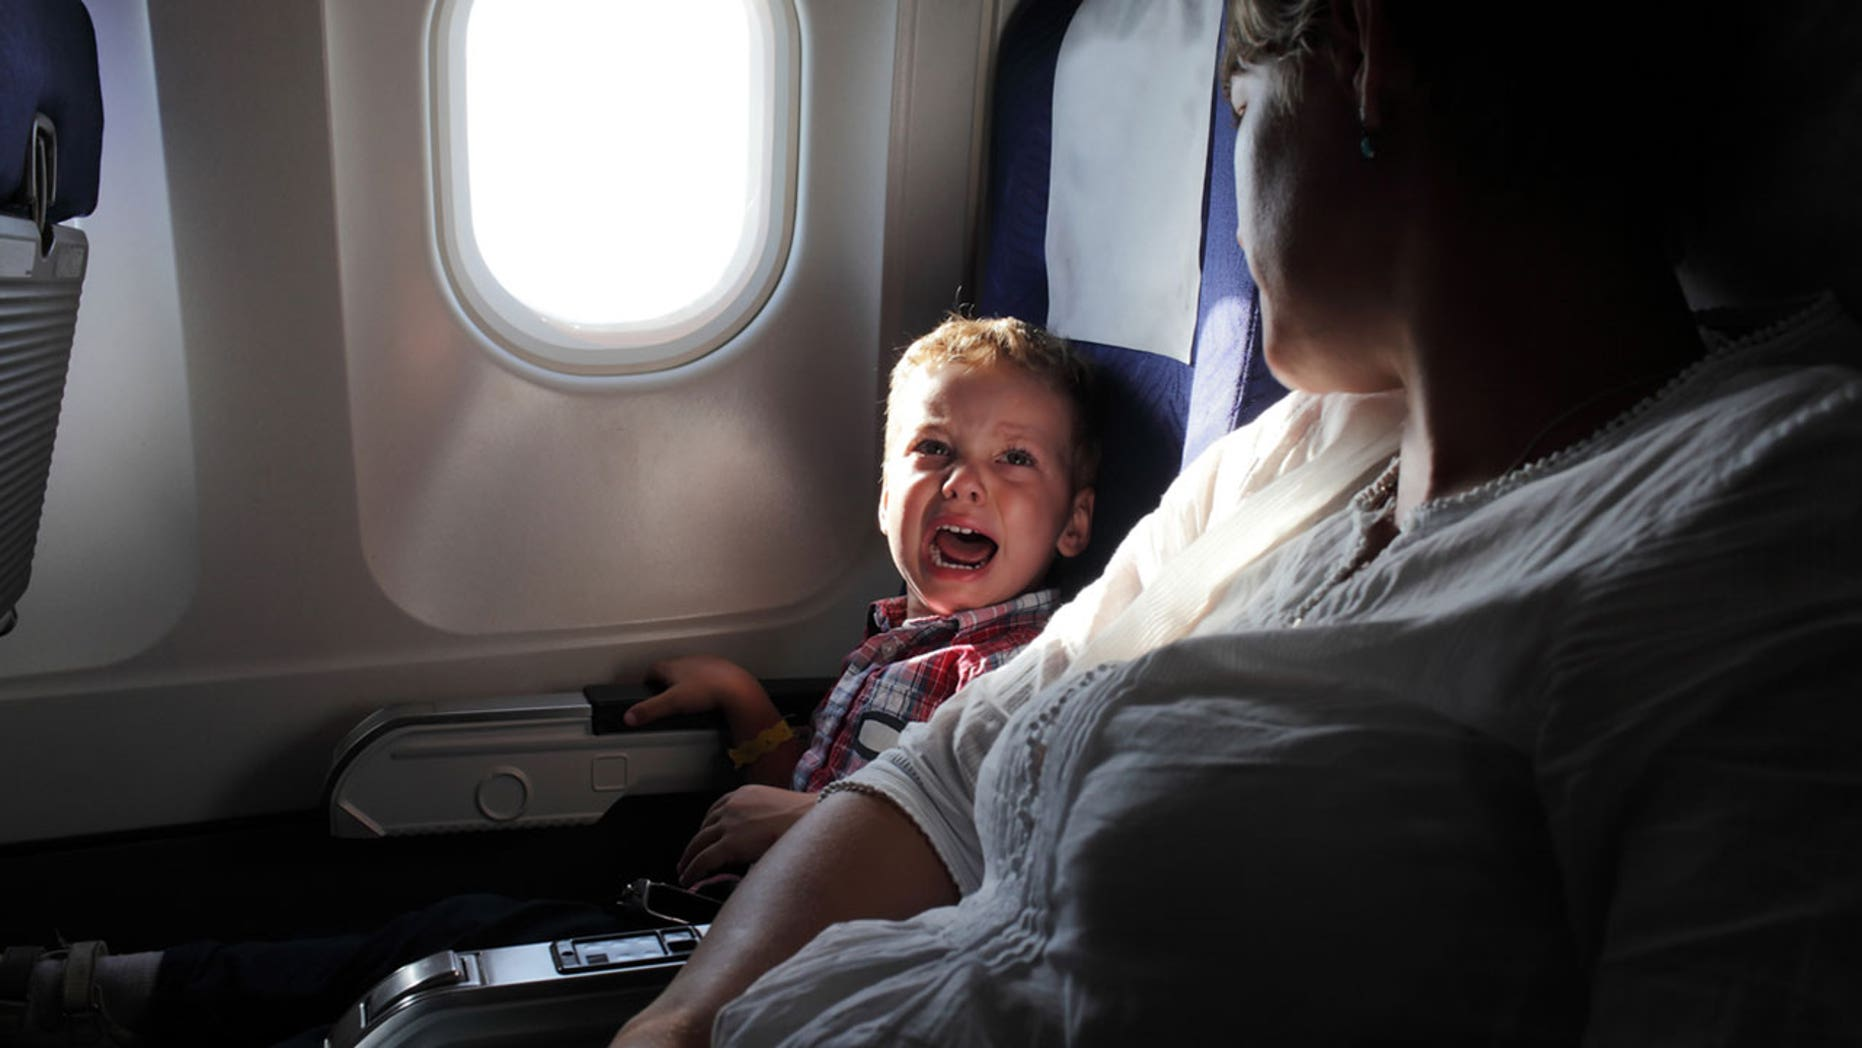 A few airlines have instituted no-children-allowed policies in certain areas of the plane.